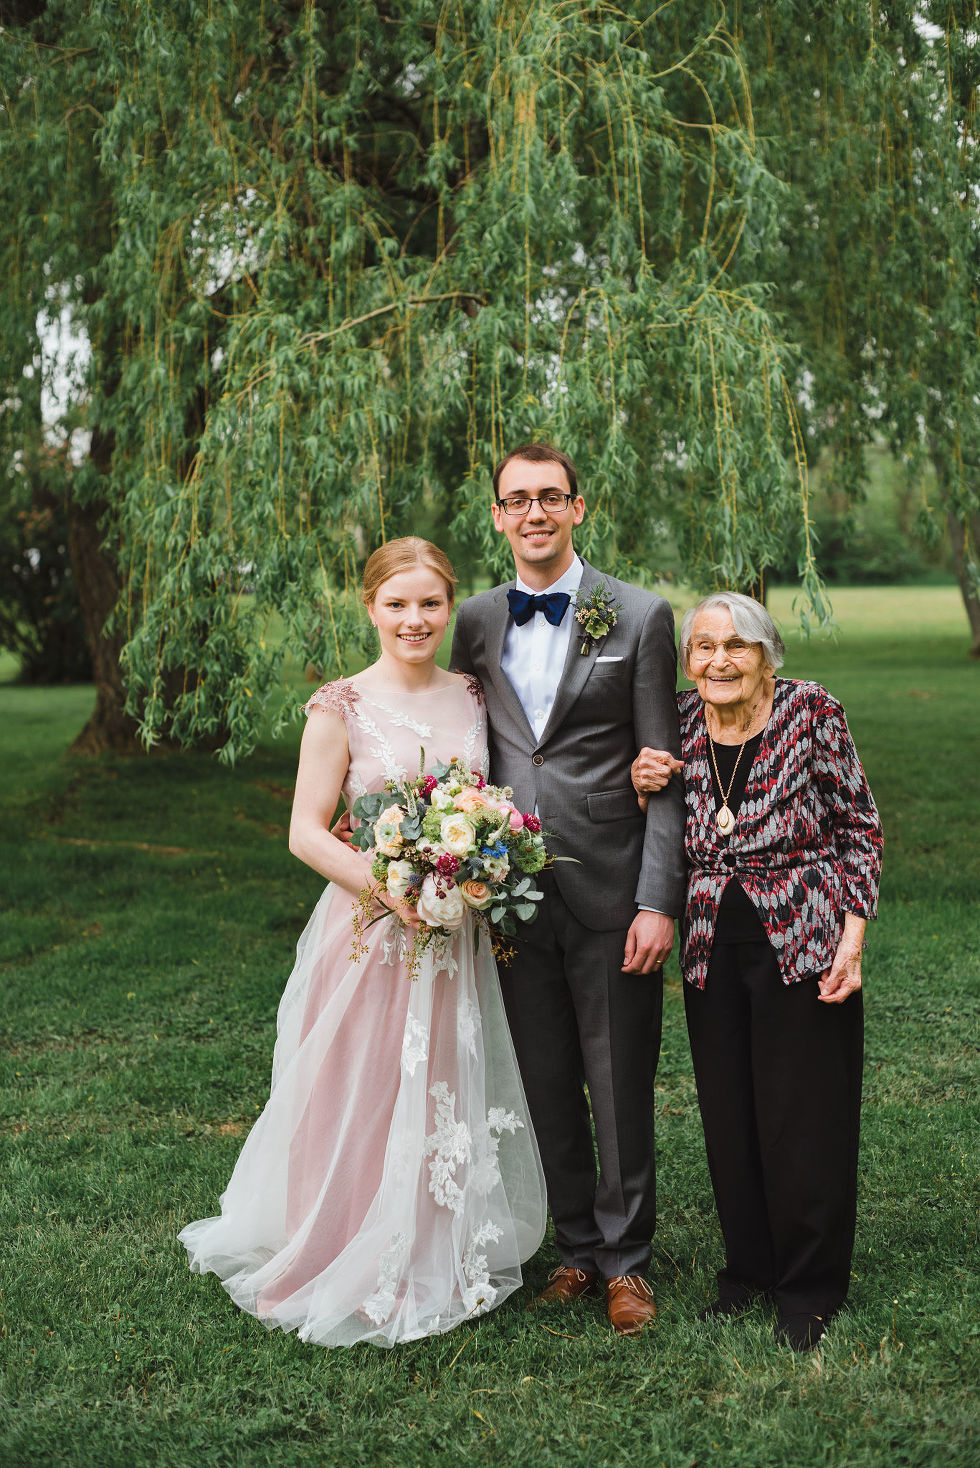 bride and groom stand with the grandmother underneath a willow tree during their southern style wedding at Ruthven National Historic Site near Hamilton